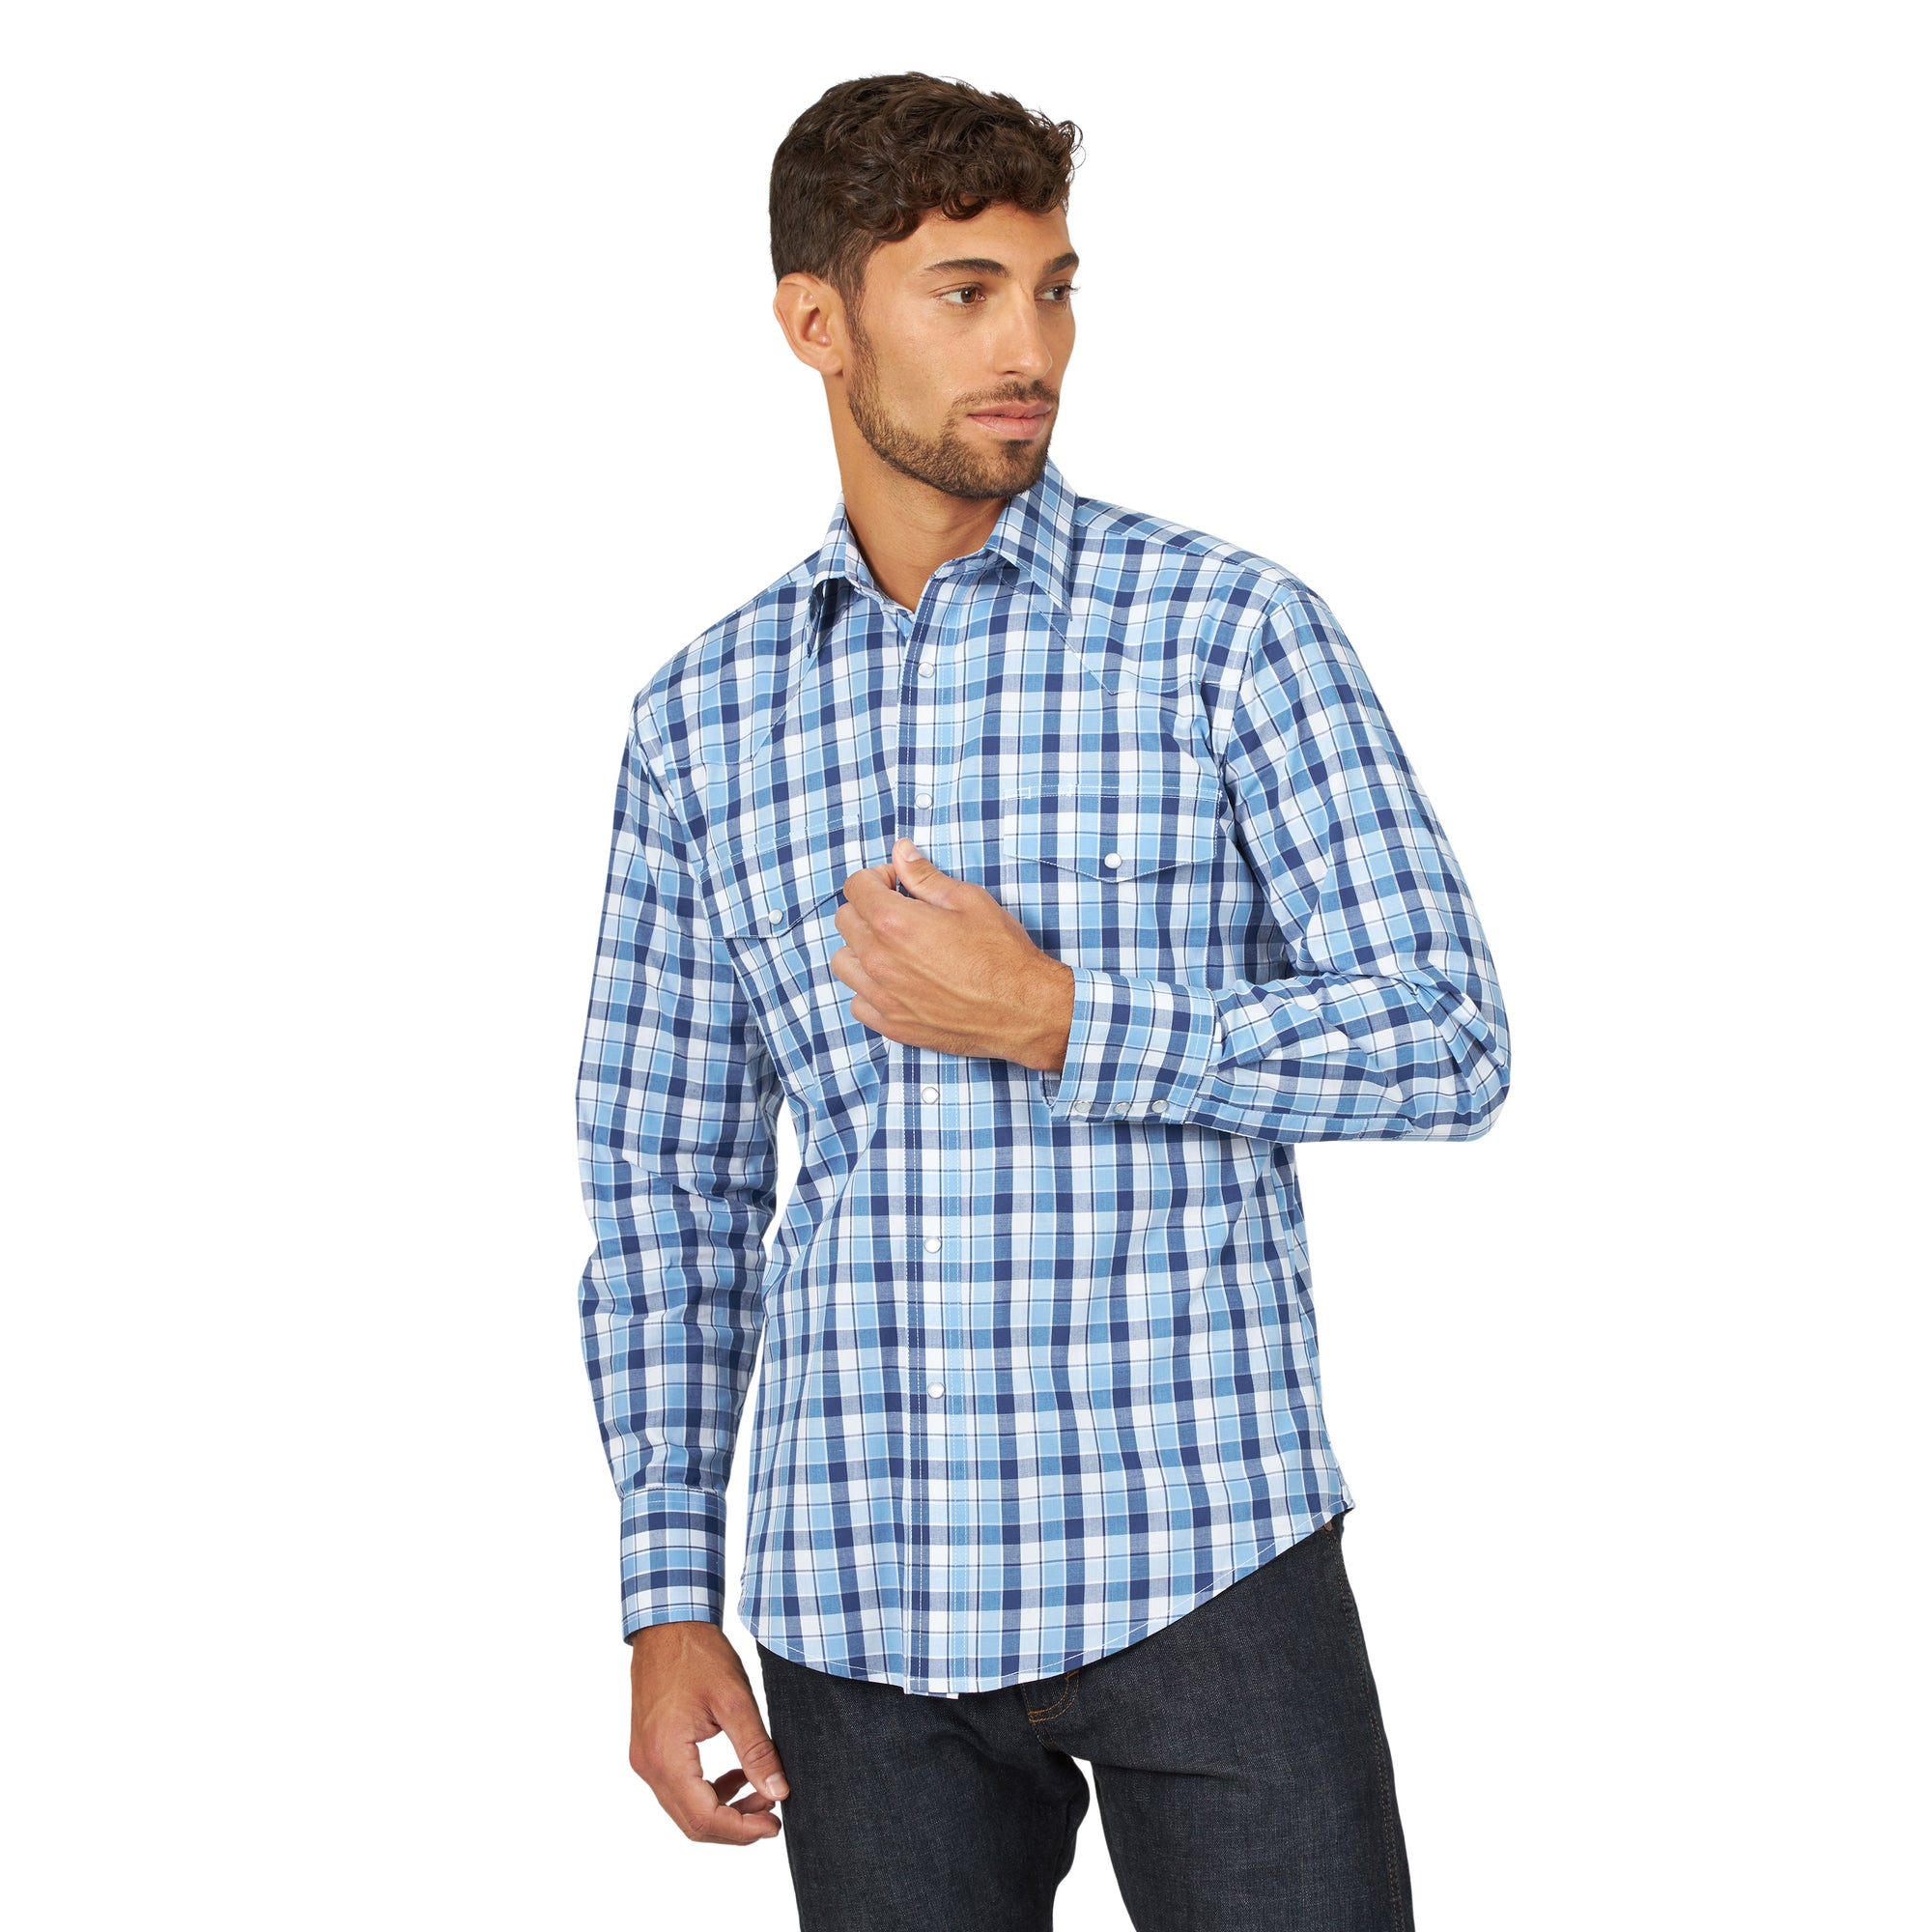 Wrangler Men's Wrinkle Resist Western Shirt Blue/White